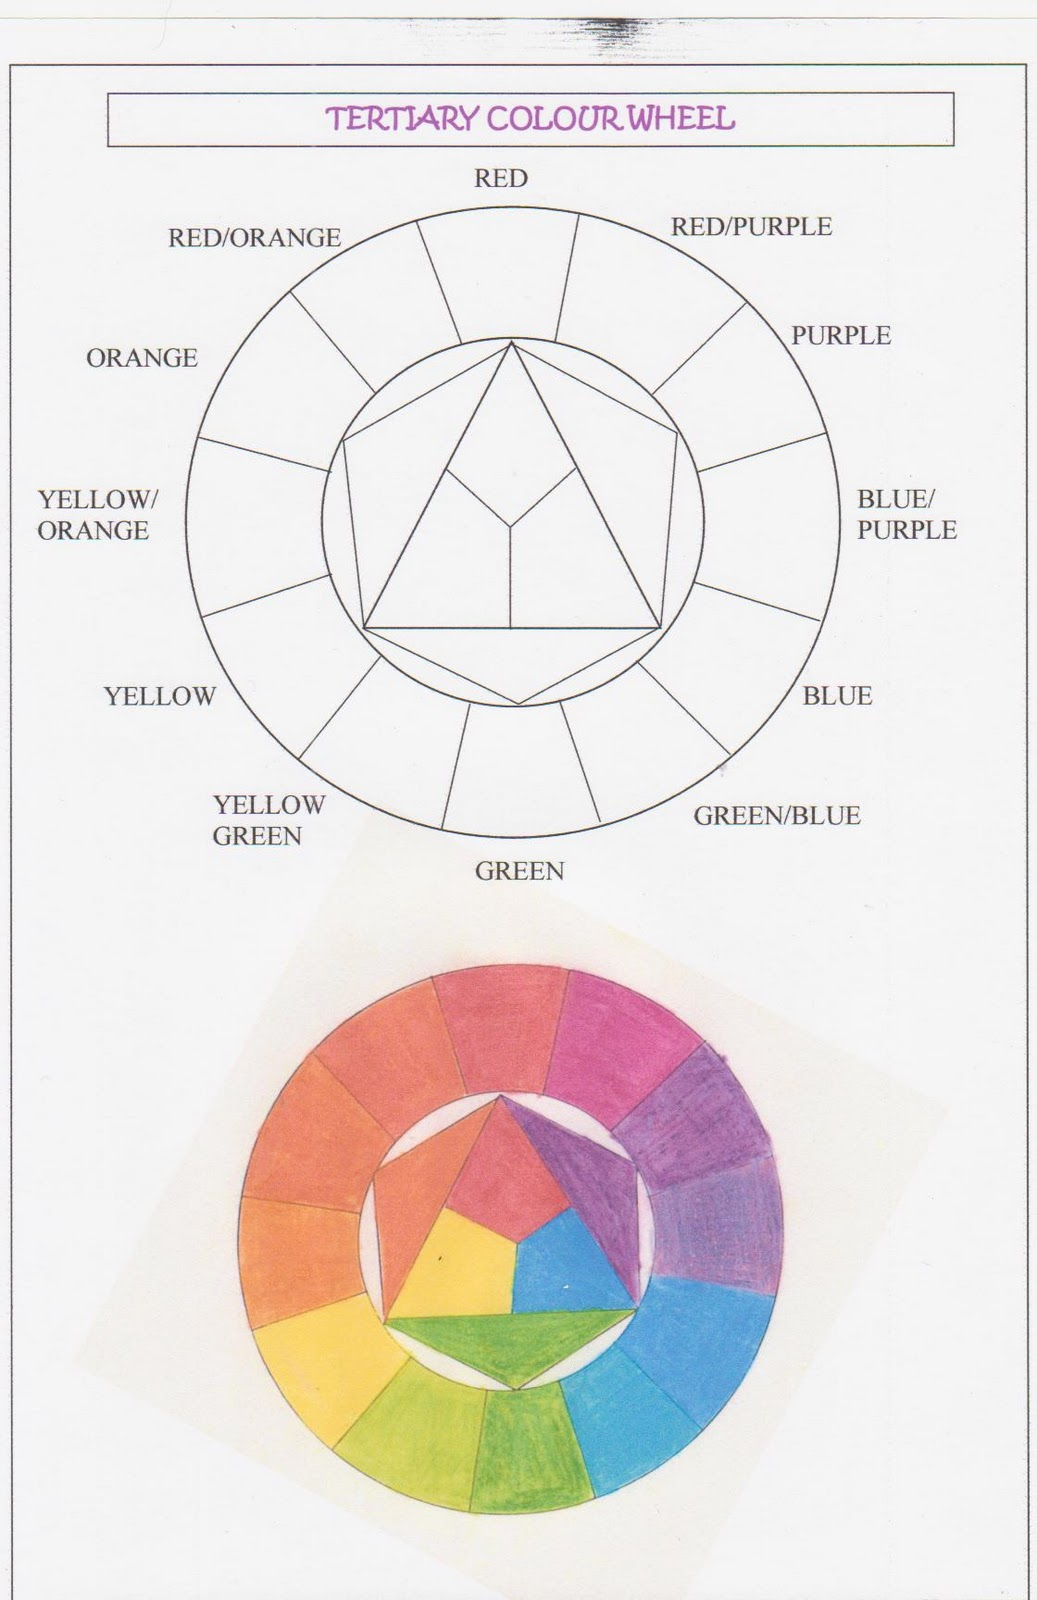 Precious Worker Tertiary Colour Wheel